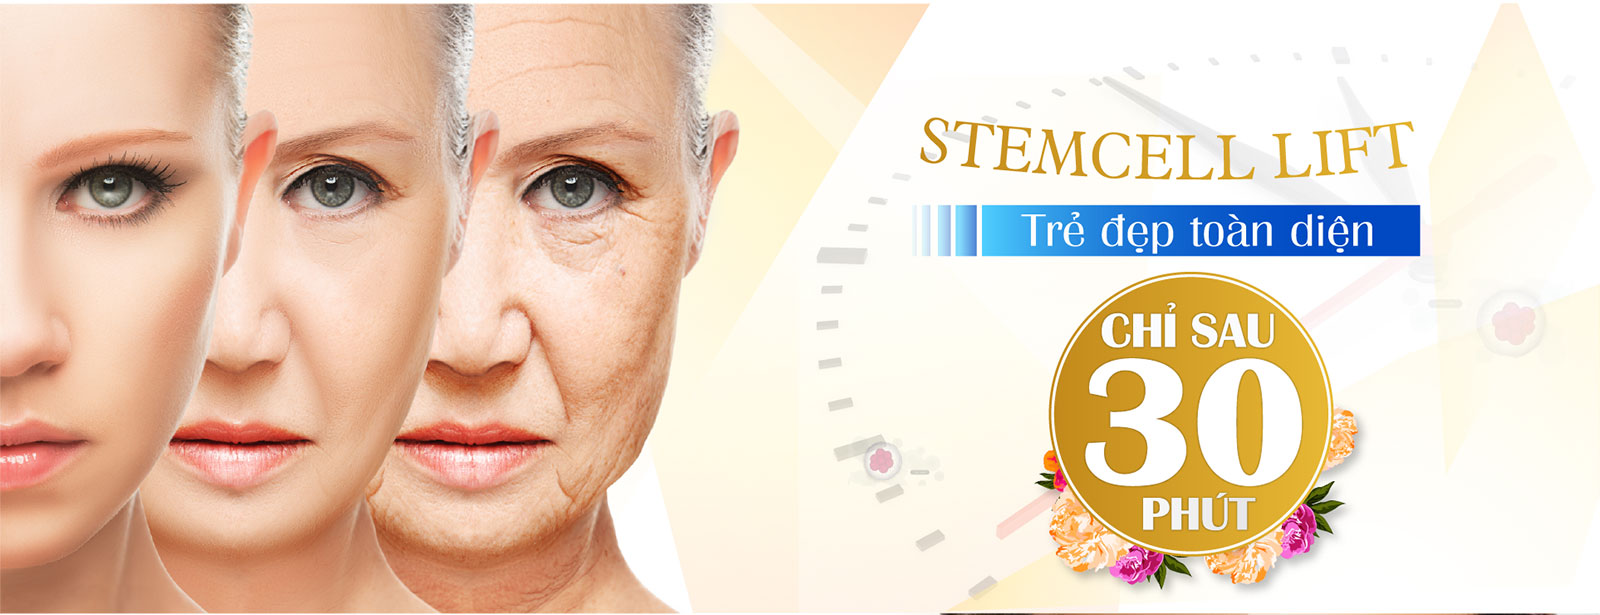 stem cell lift